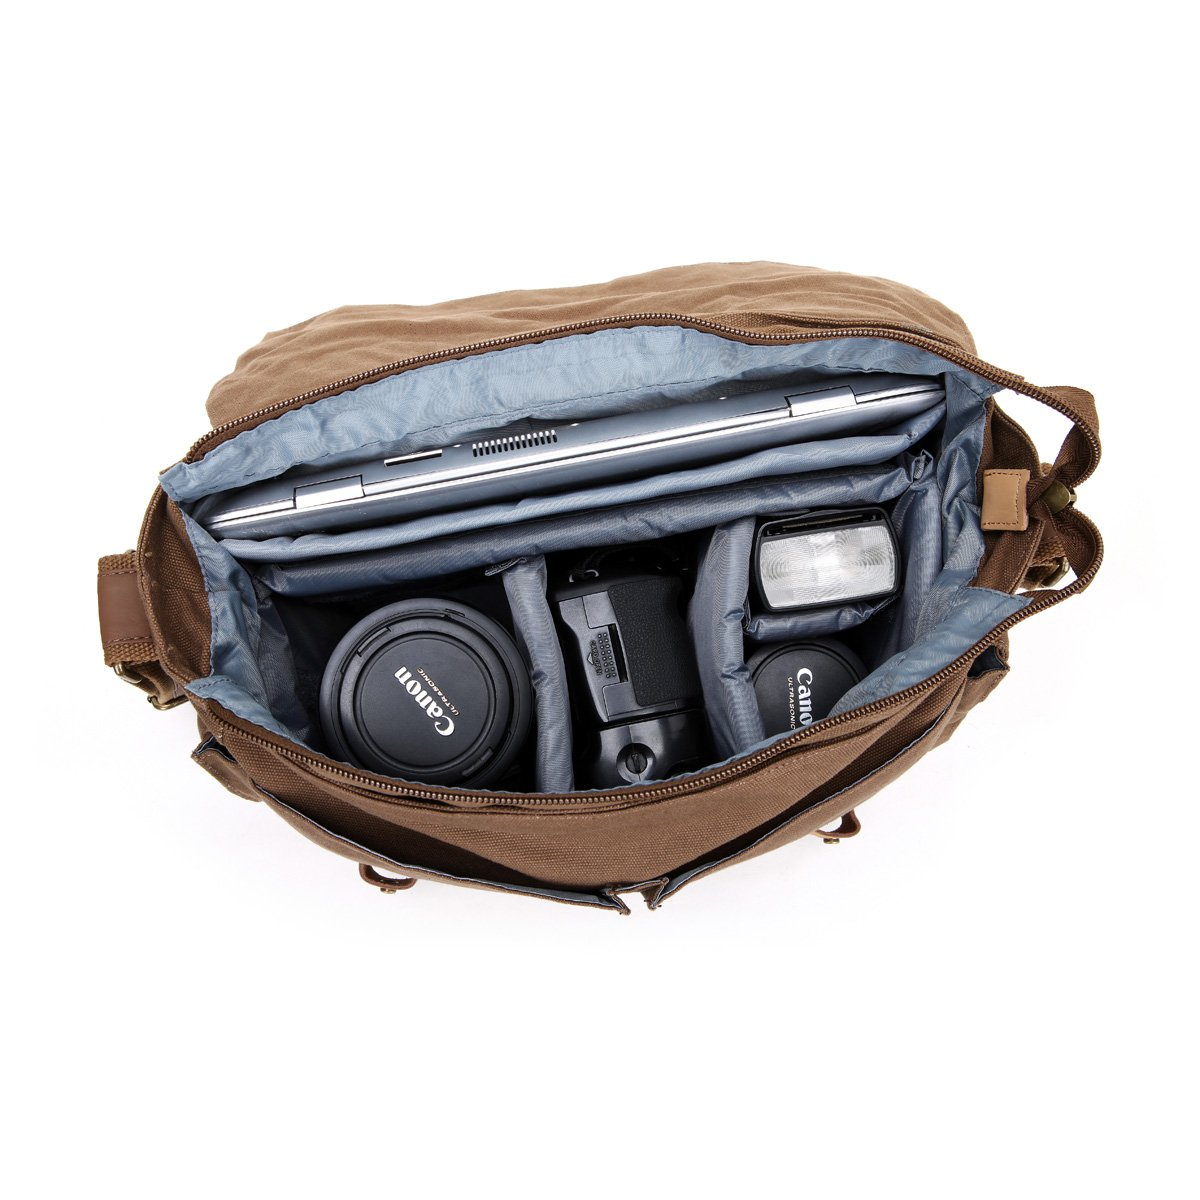 DSLR Slr Camera Bag, MOACC BrownDigital Video Recorder Ptotography Canvas Sling Backpack Protective Rucksack Waterproof Shoulder Messenger with Shockproof Insert for Sony Canon Nikon Olympus Pentax